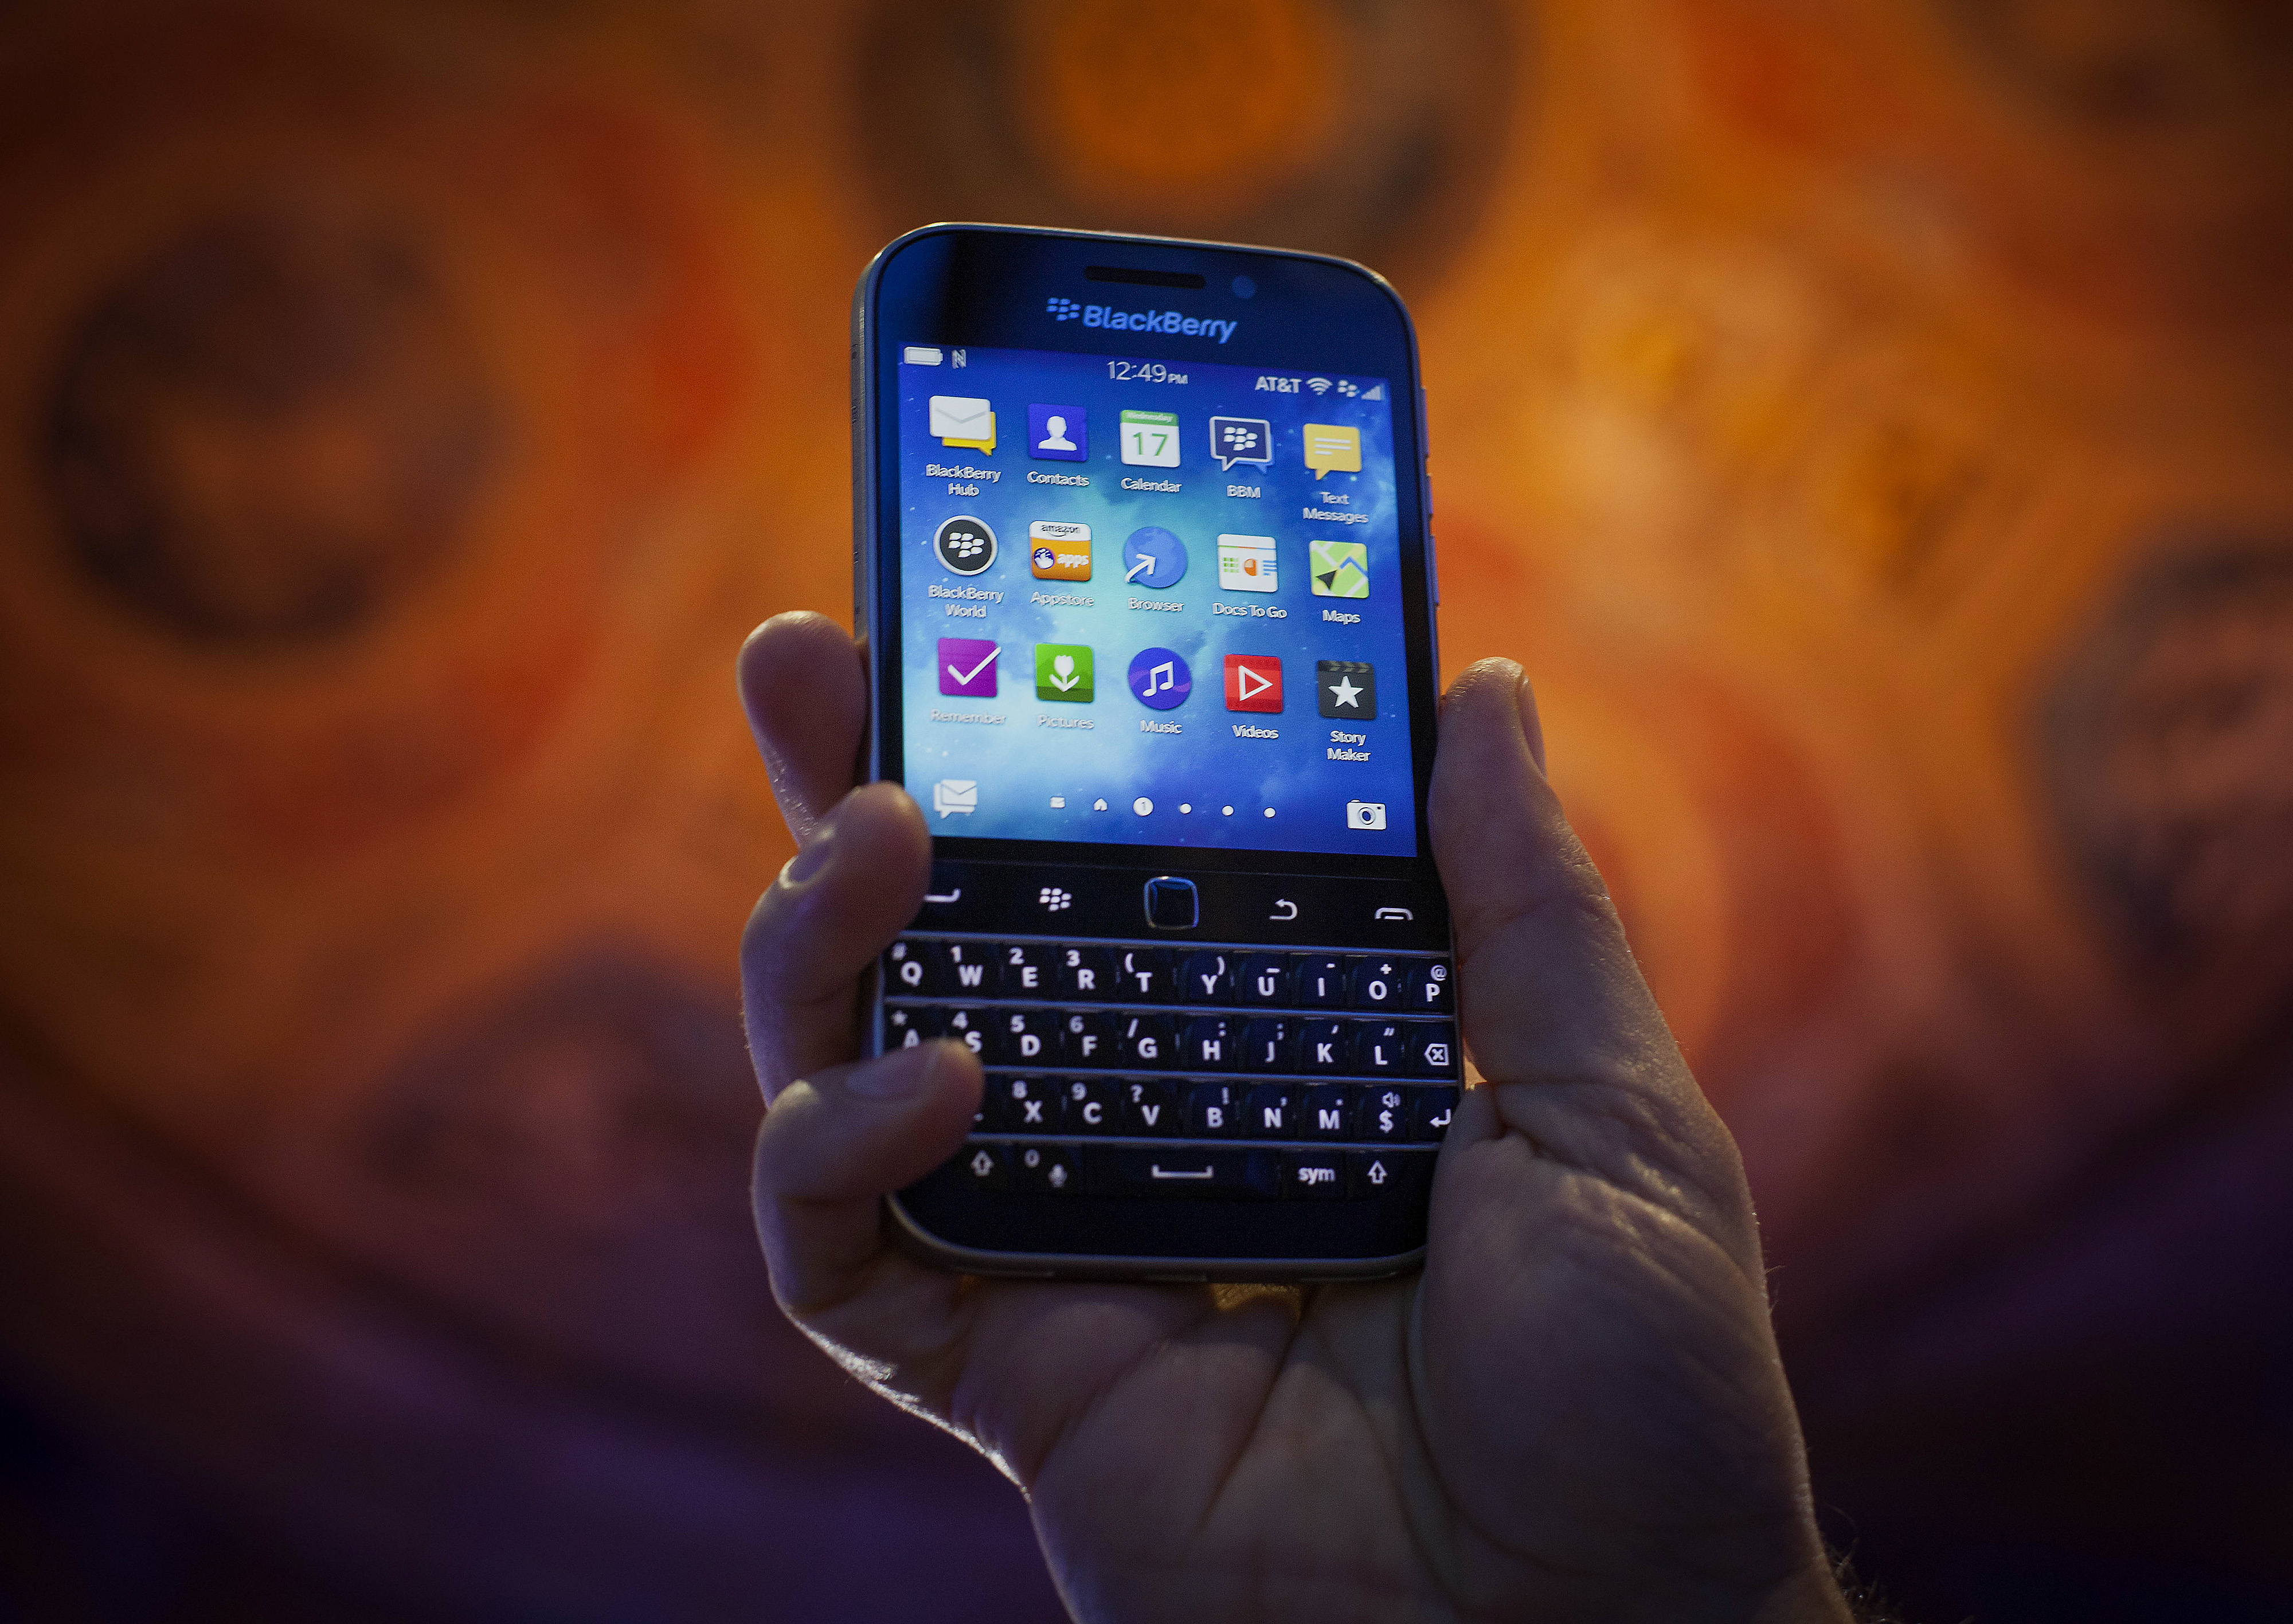 The BlackBerry Ltd. Classic smartphone is displayed for a photograph during an event in New York, U.S., on Wednesday, Dec. 17, 2014.